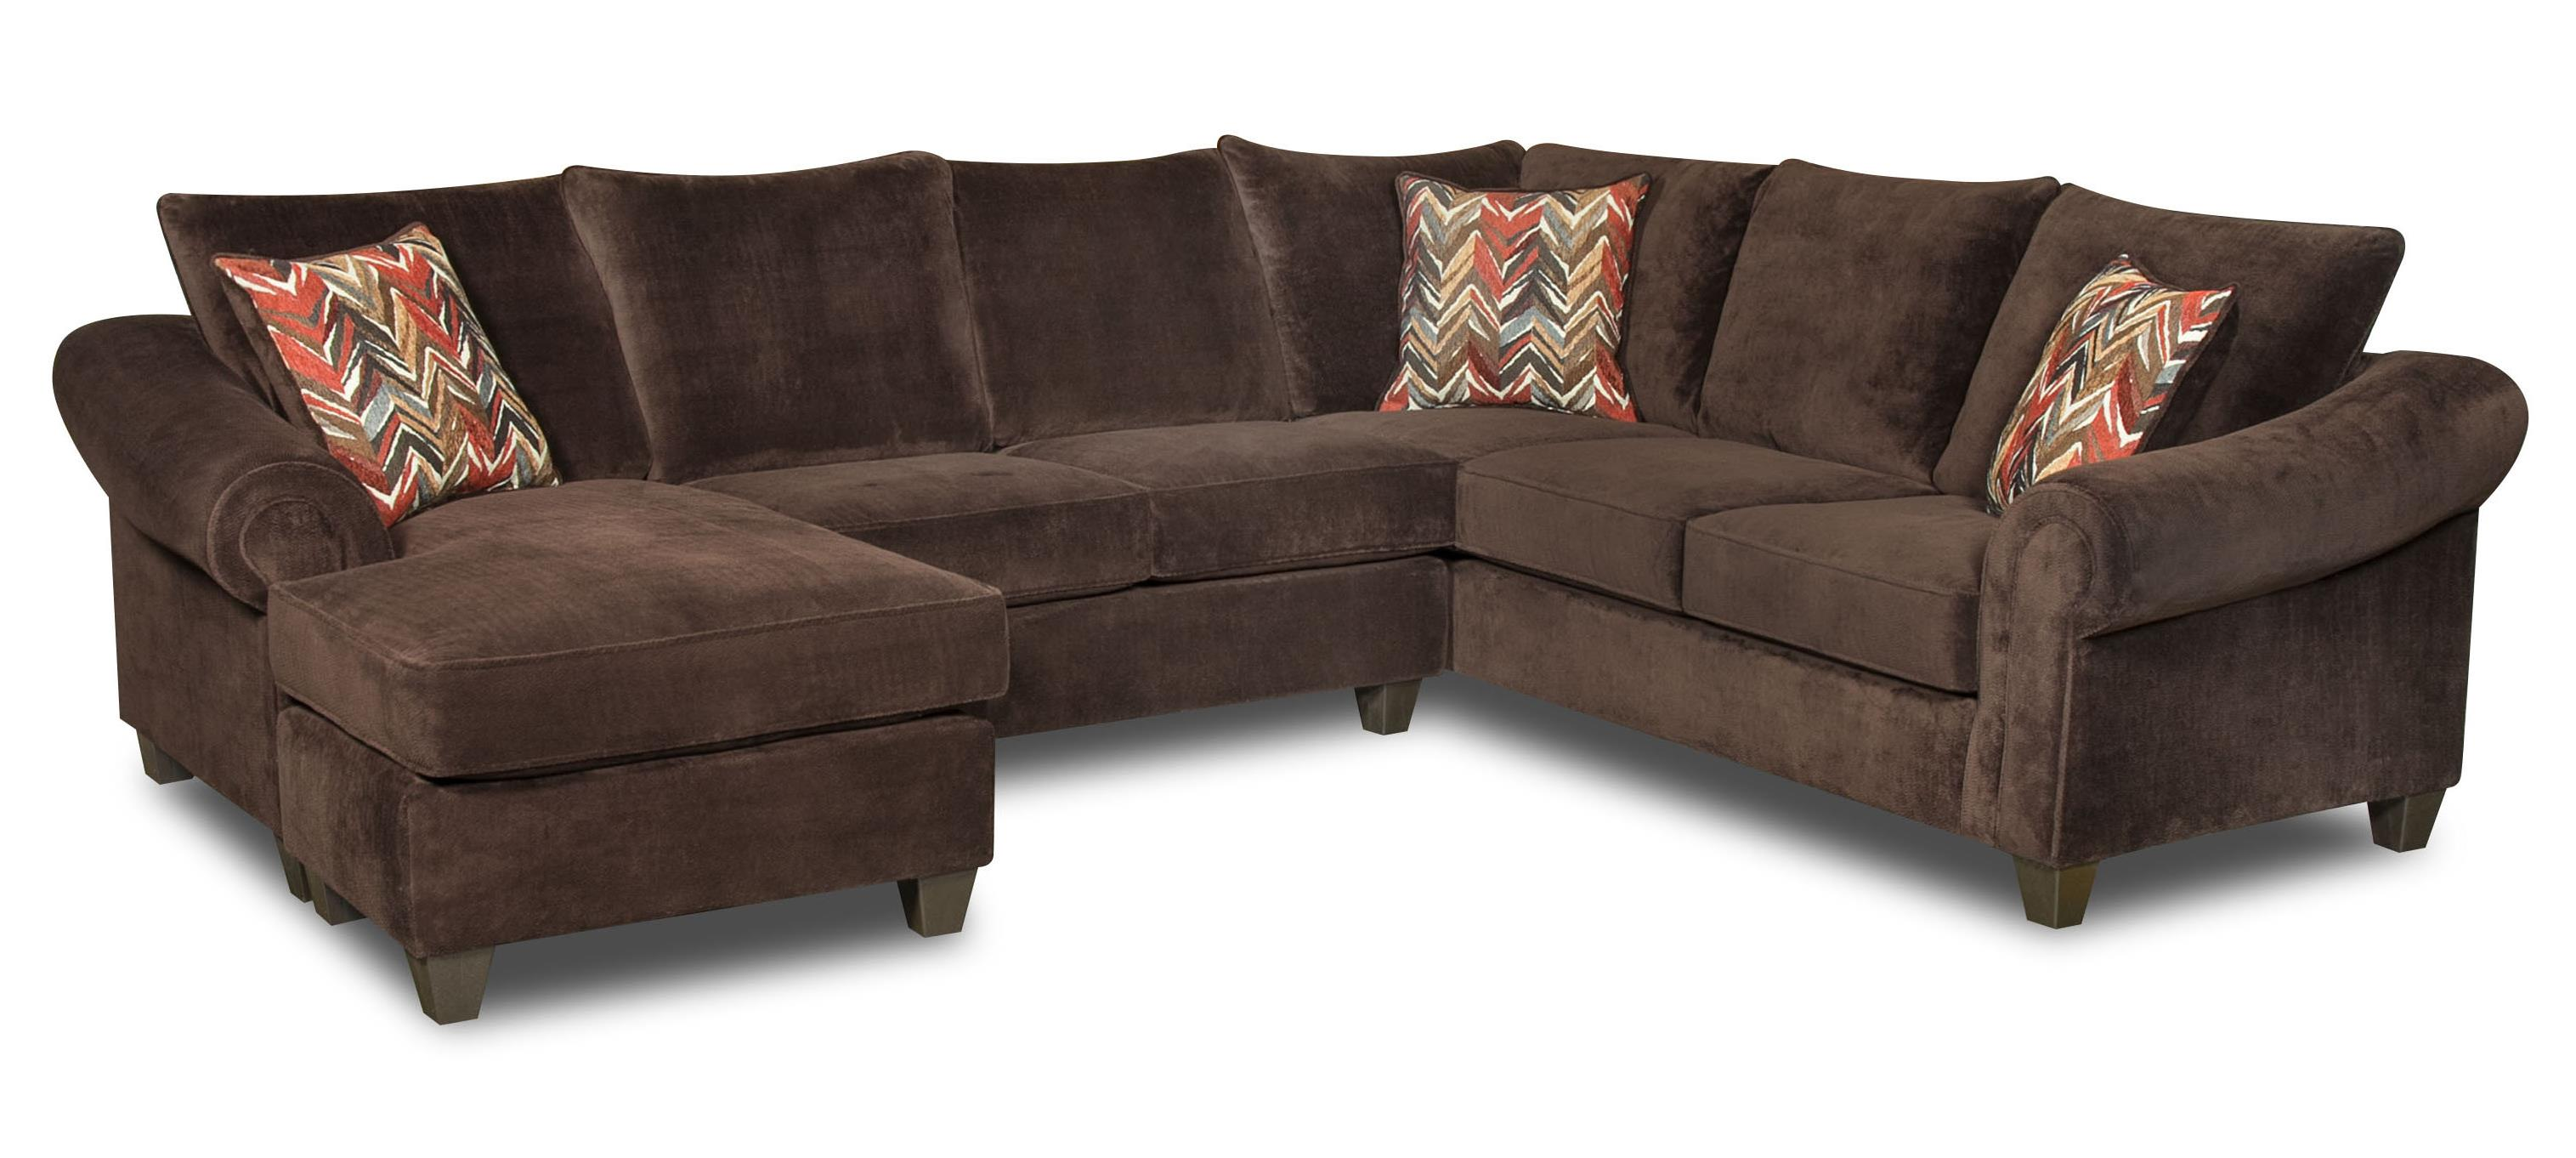 Furniture upholstery group bay city saginaw - American Furniture 2800 Sectional Sofa Item Number 2820 2840 2450